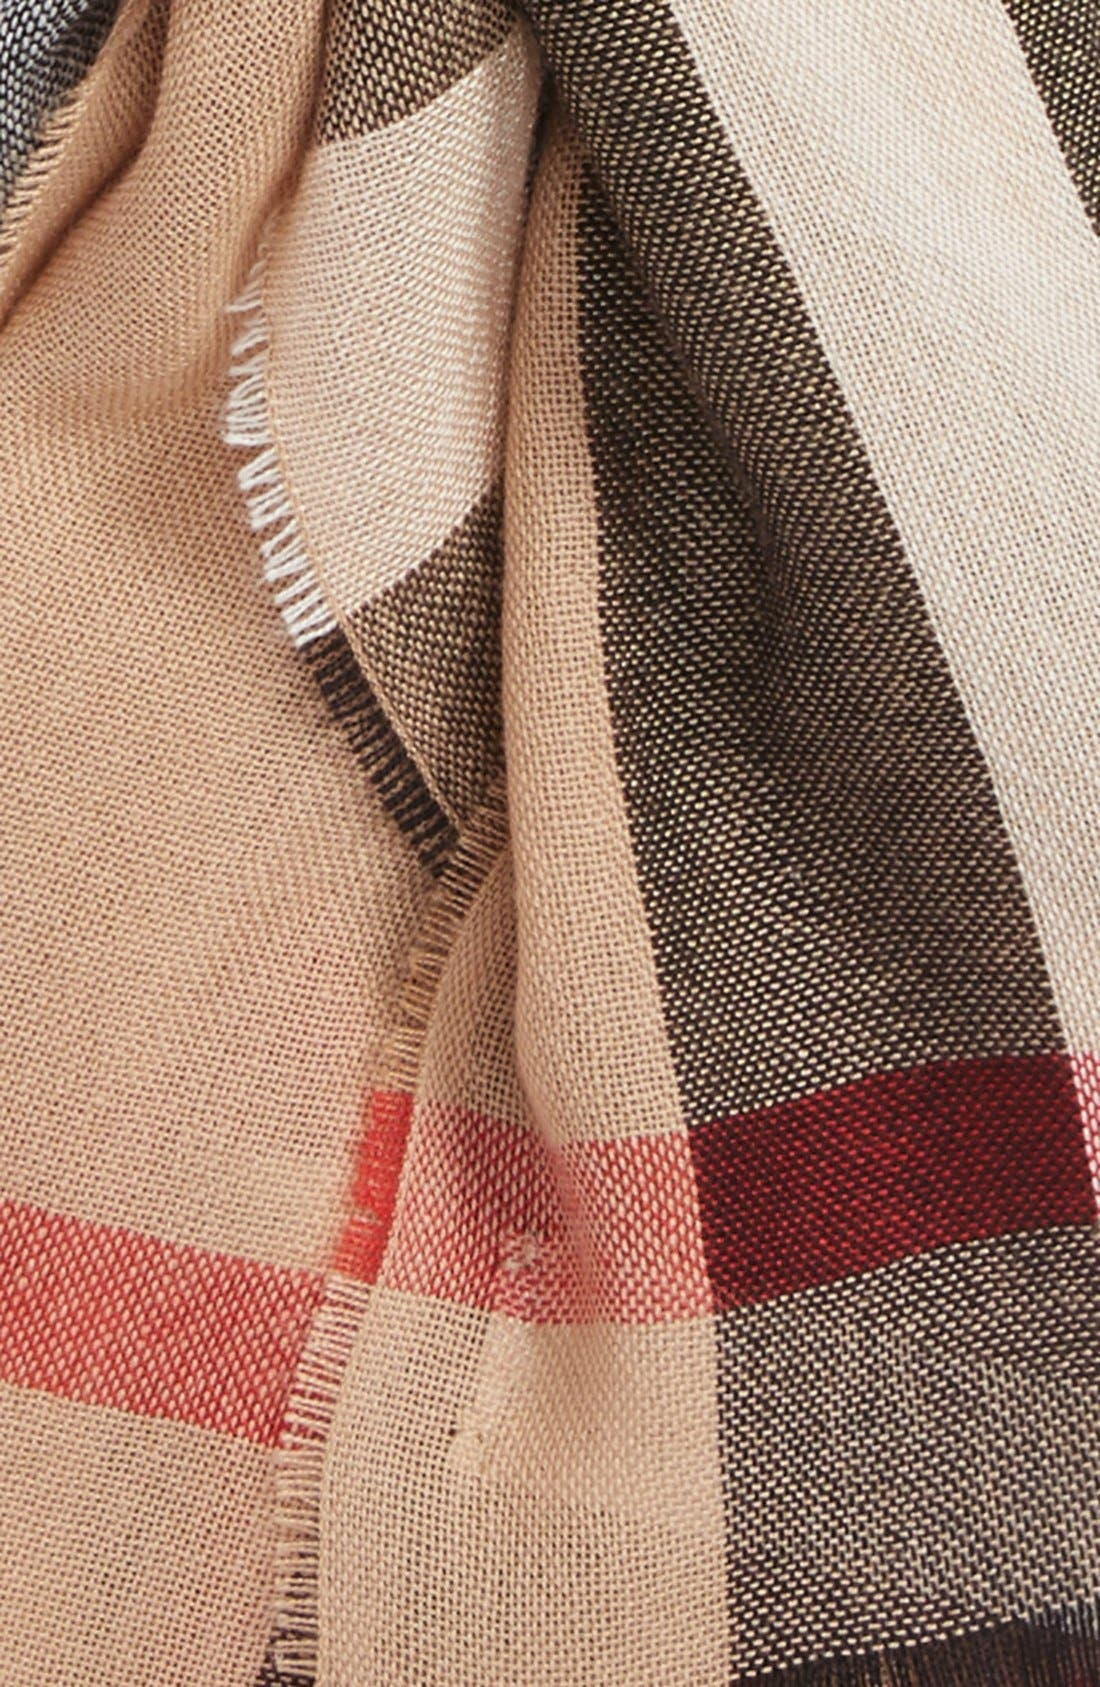 Alternate Image 3  - Burberry Check Wool & Cashmere Scarf